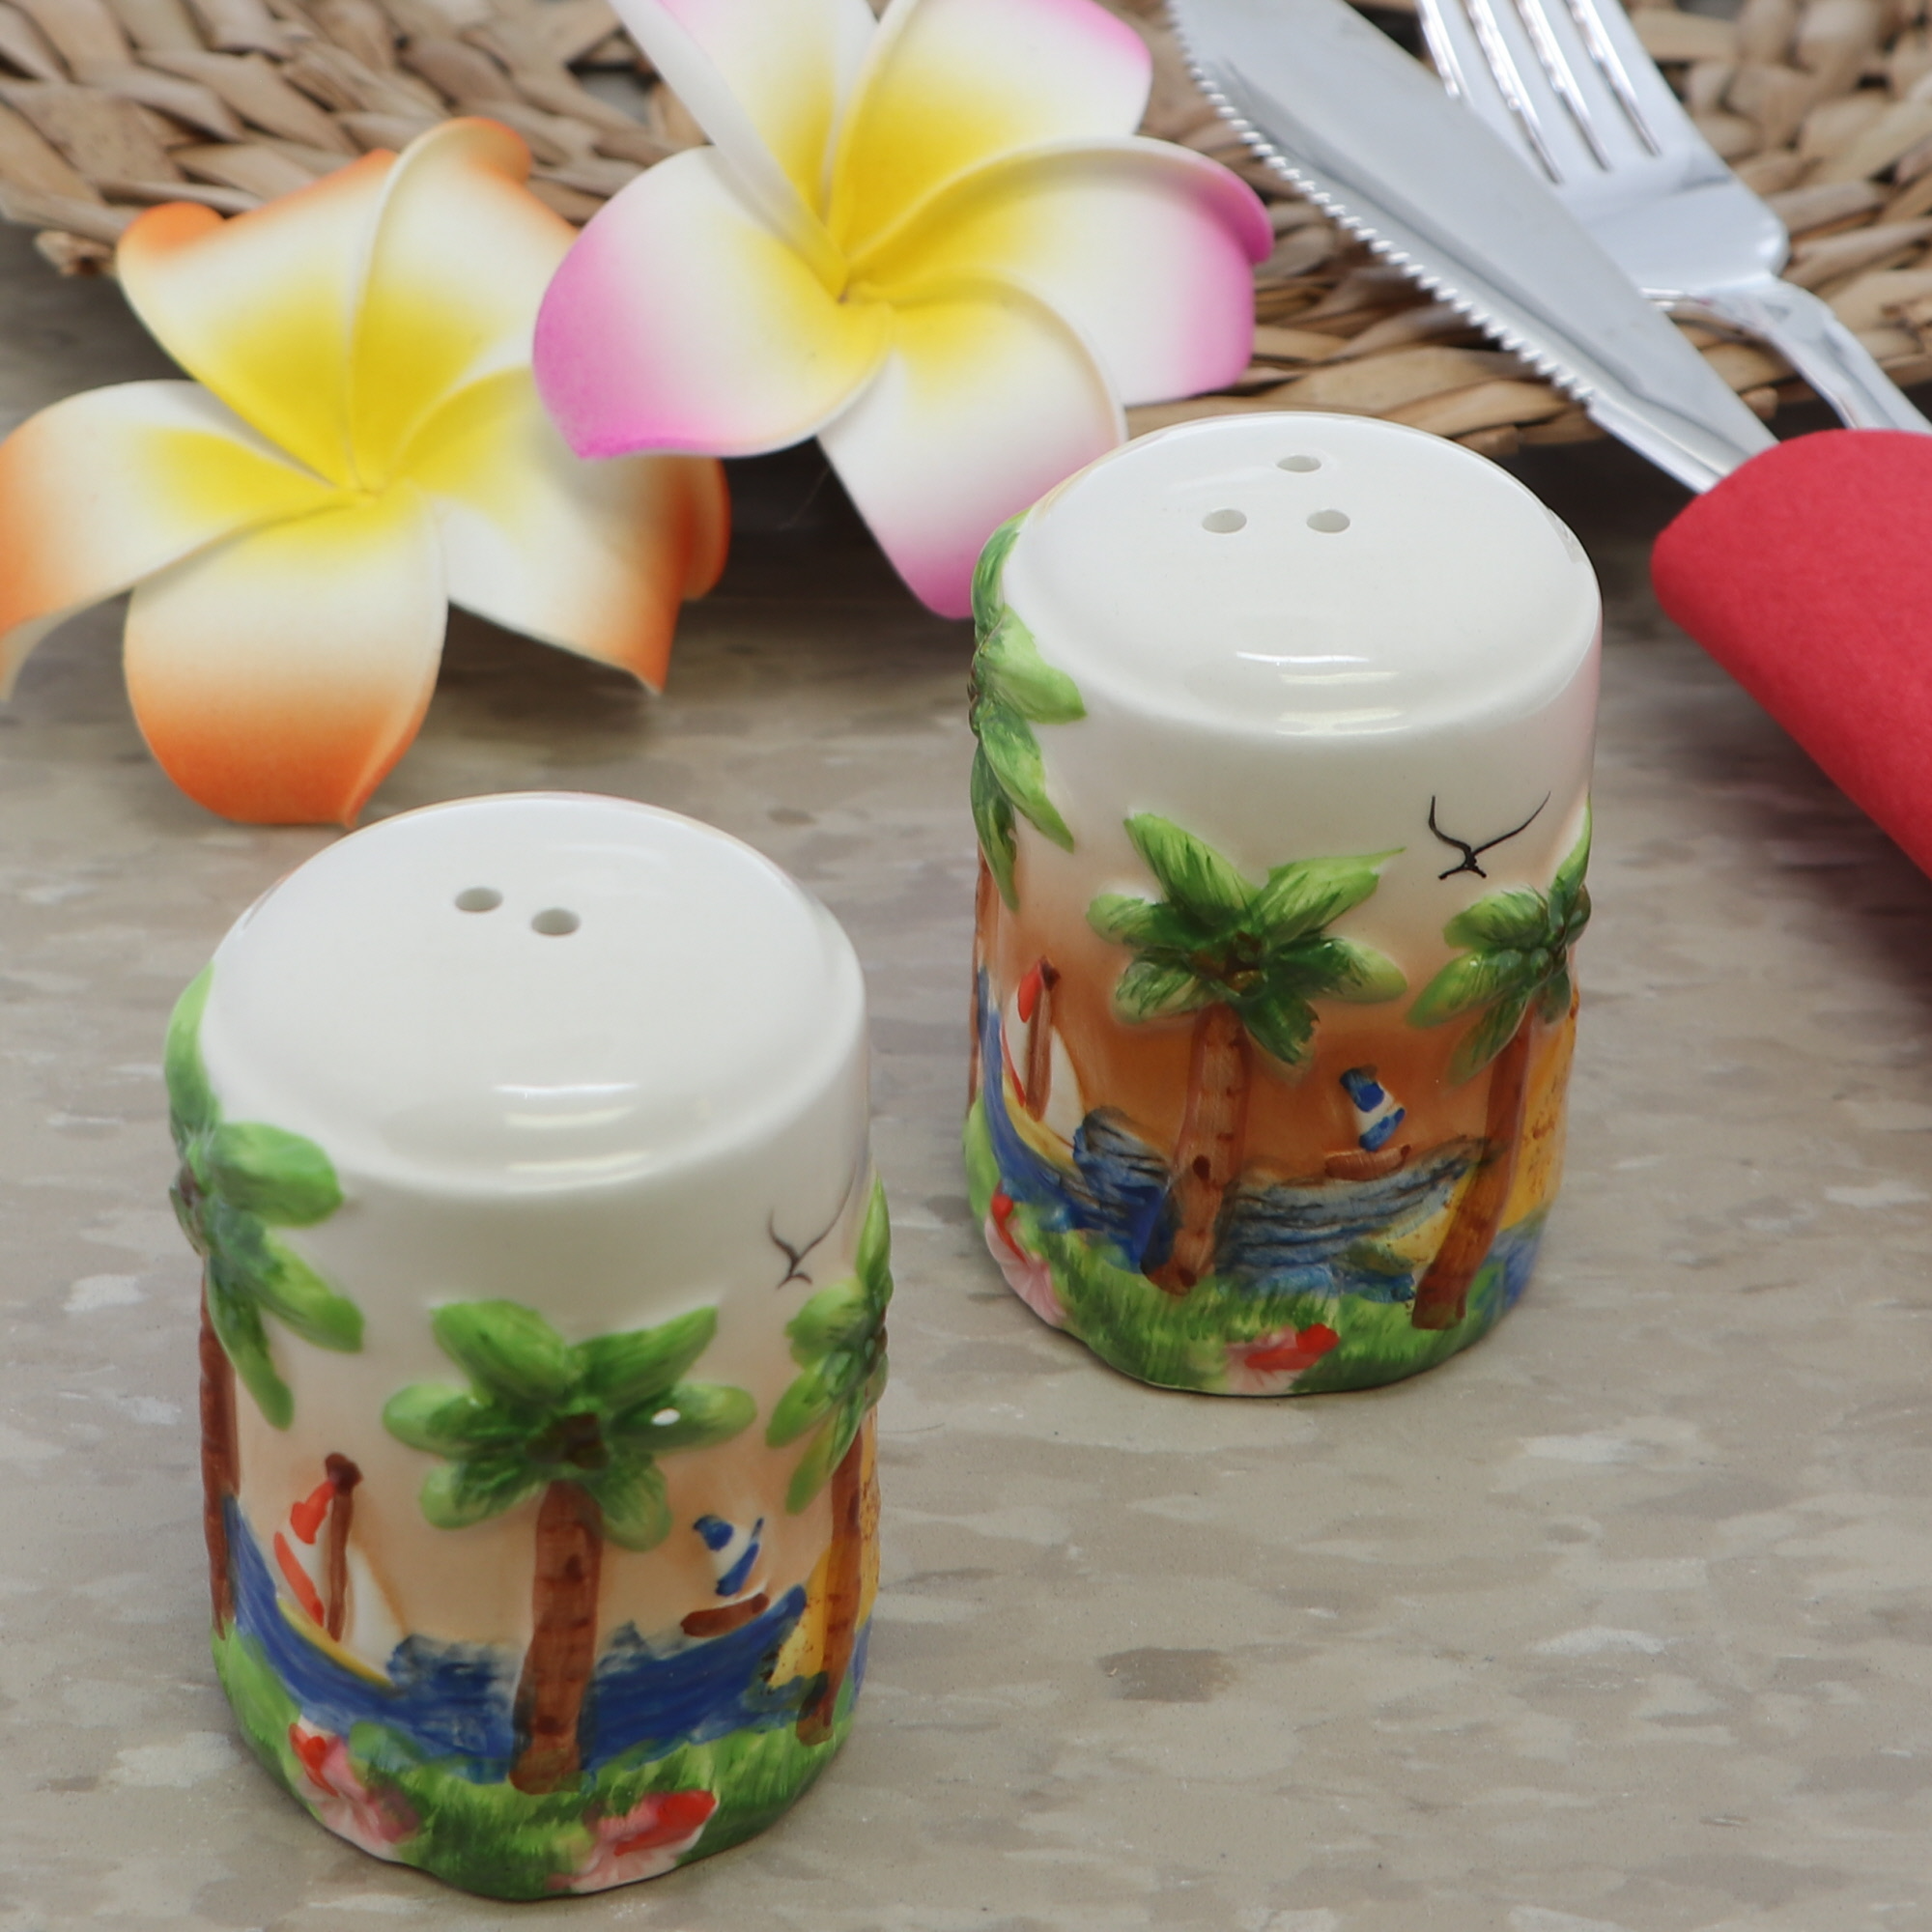 salt and peppers shakers